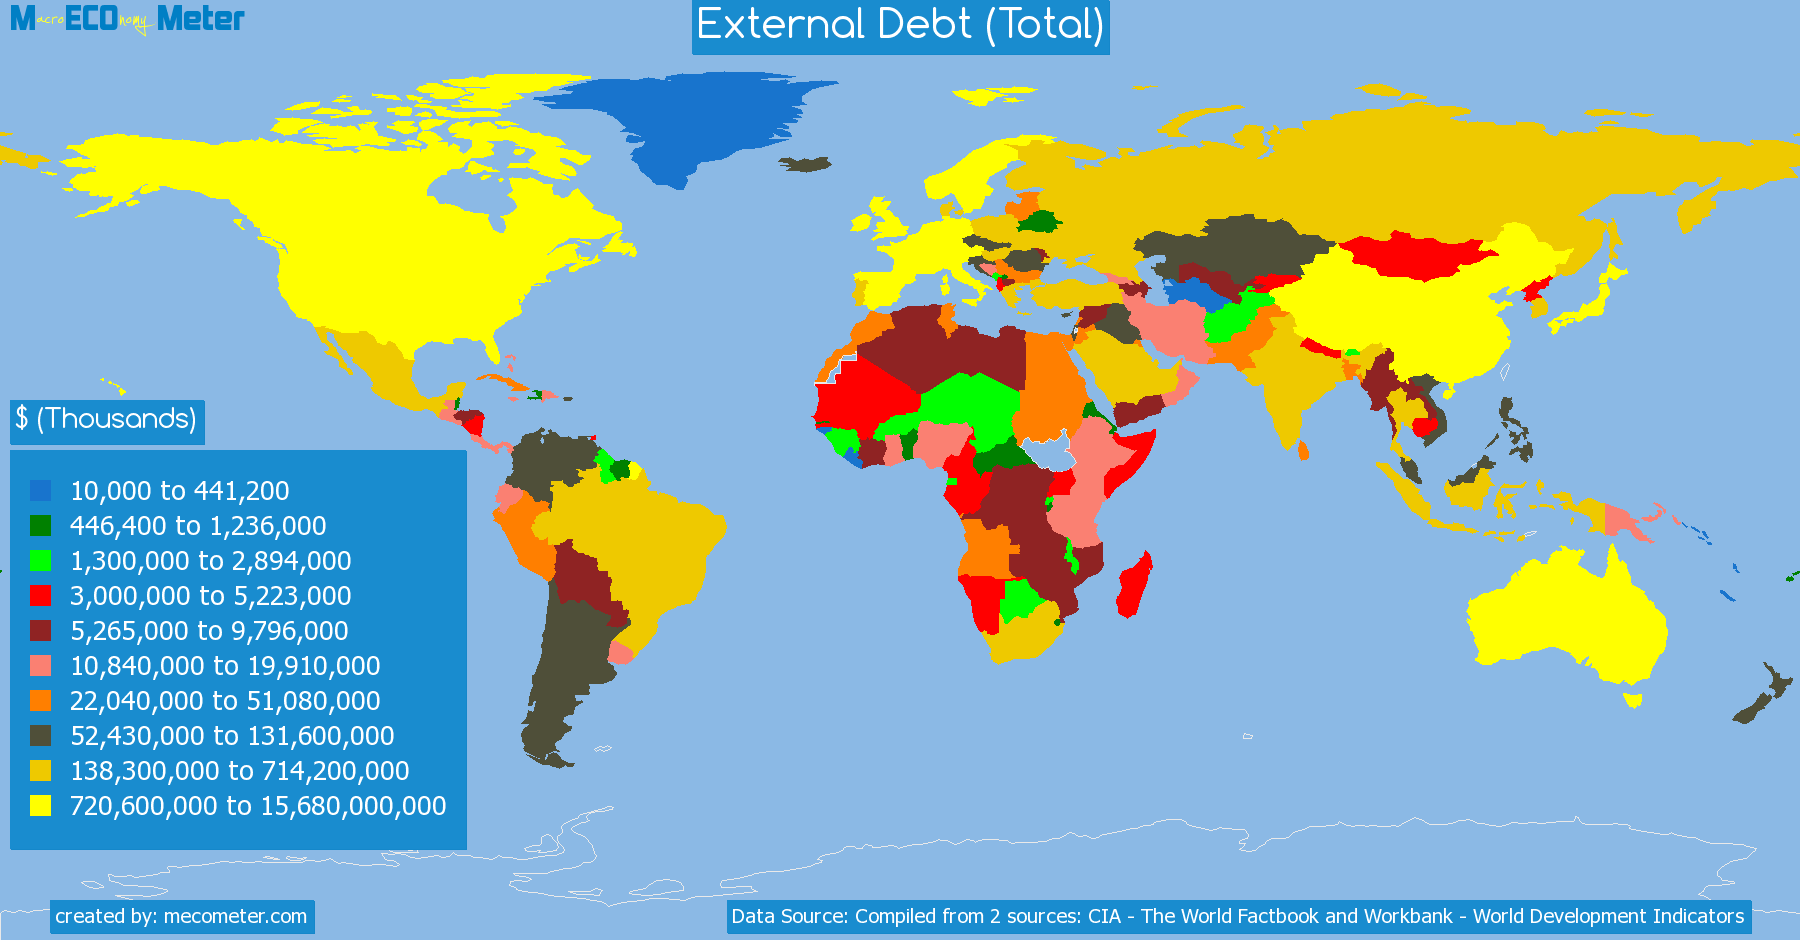 list of countries by External Debt (Total)